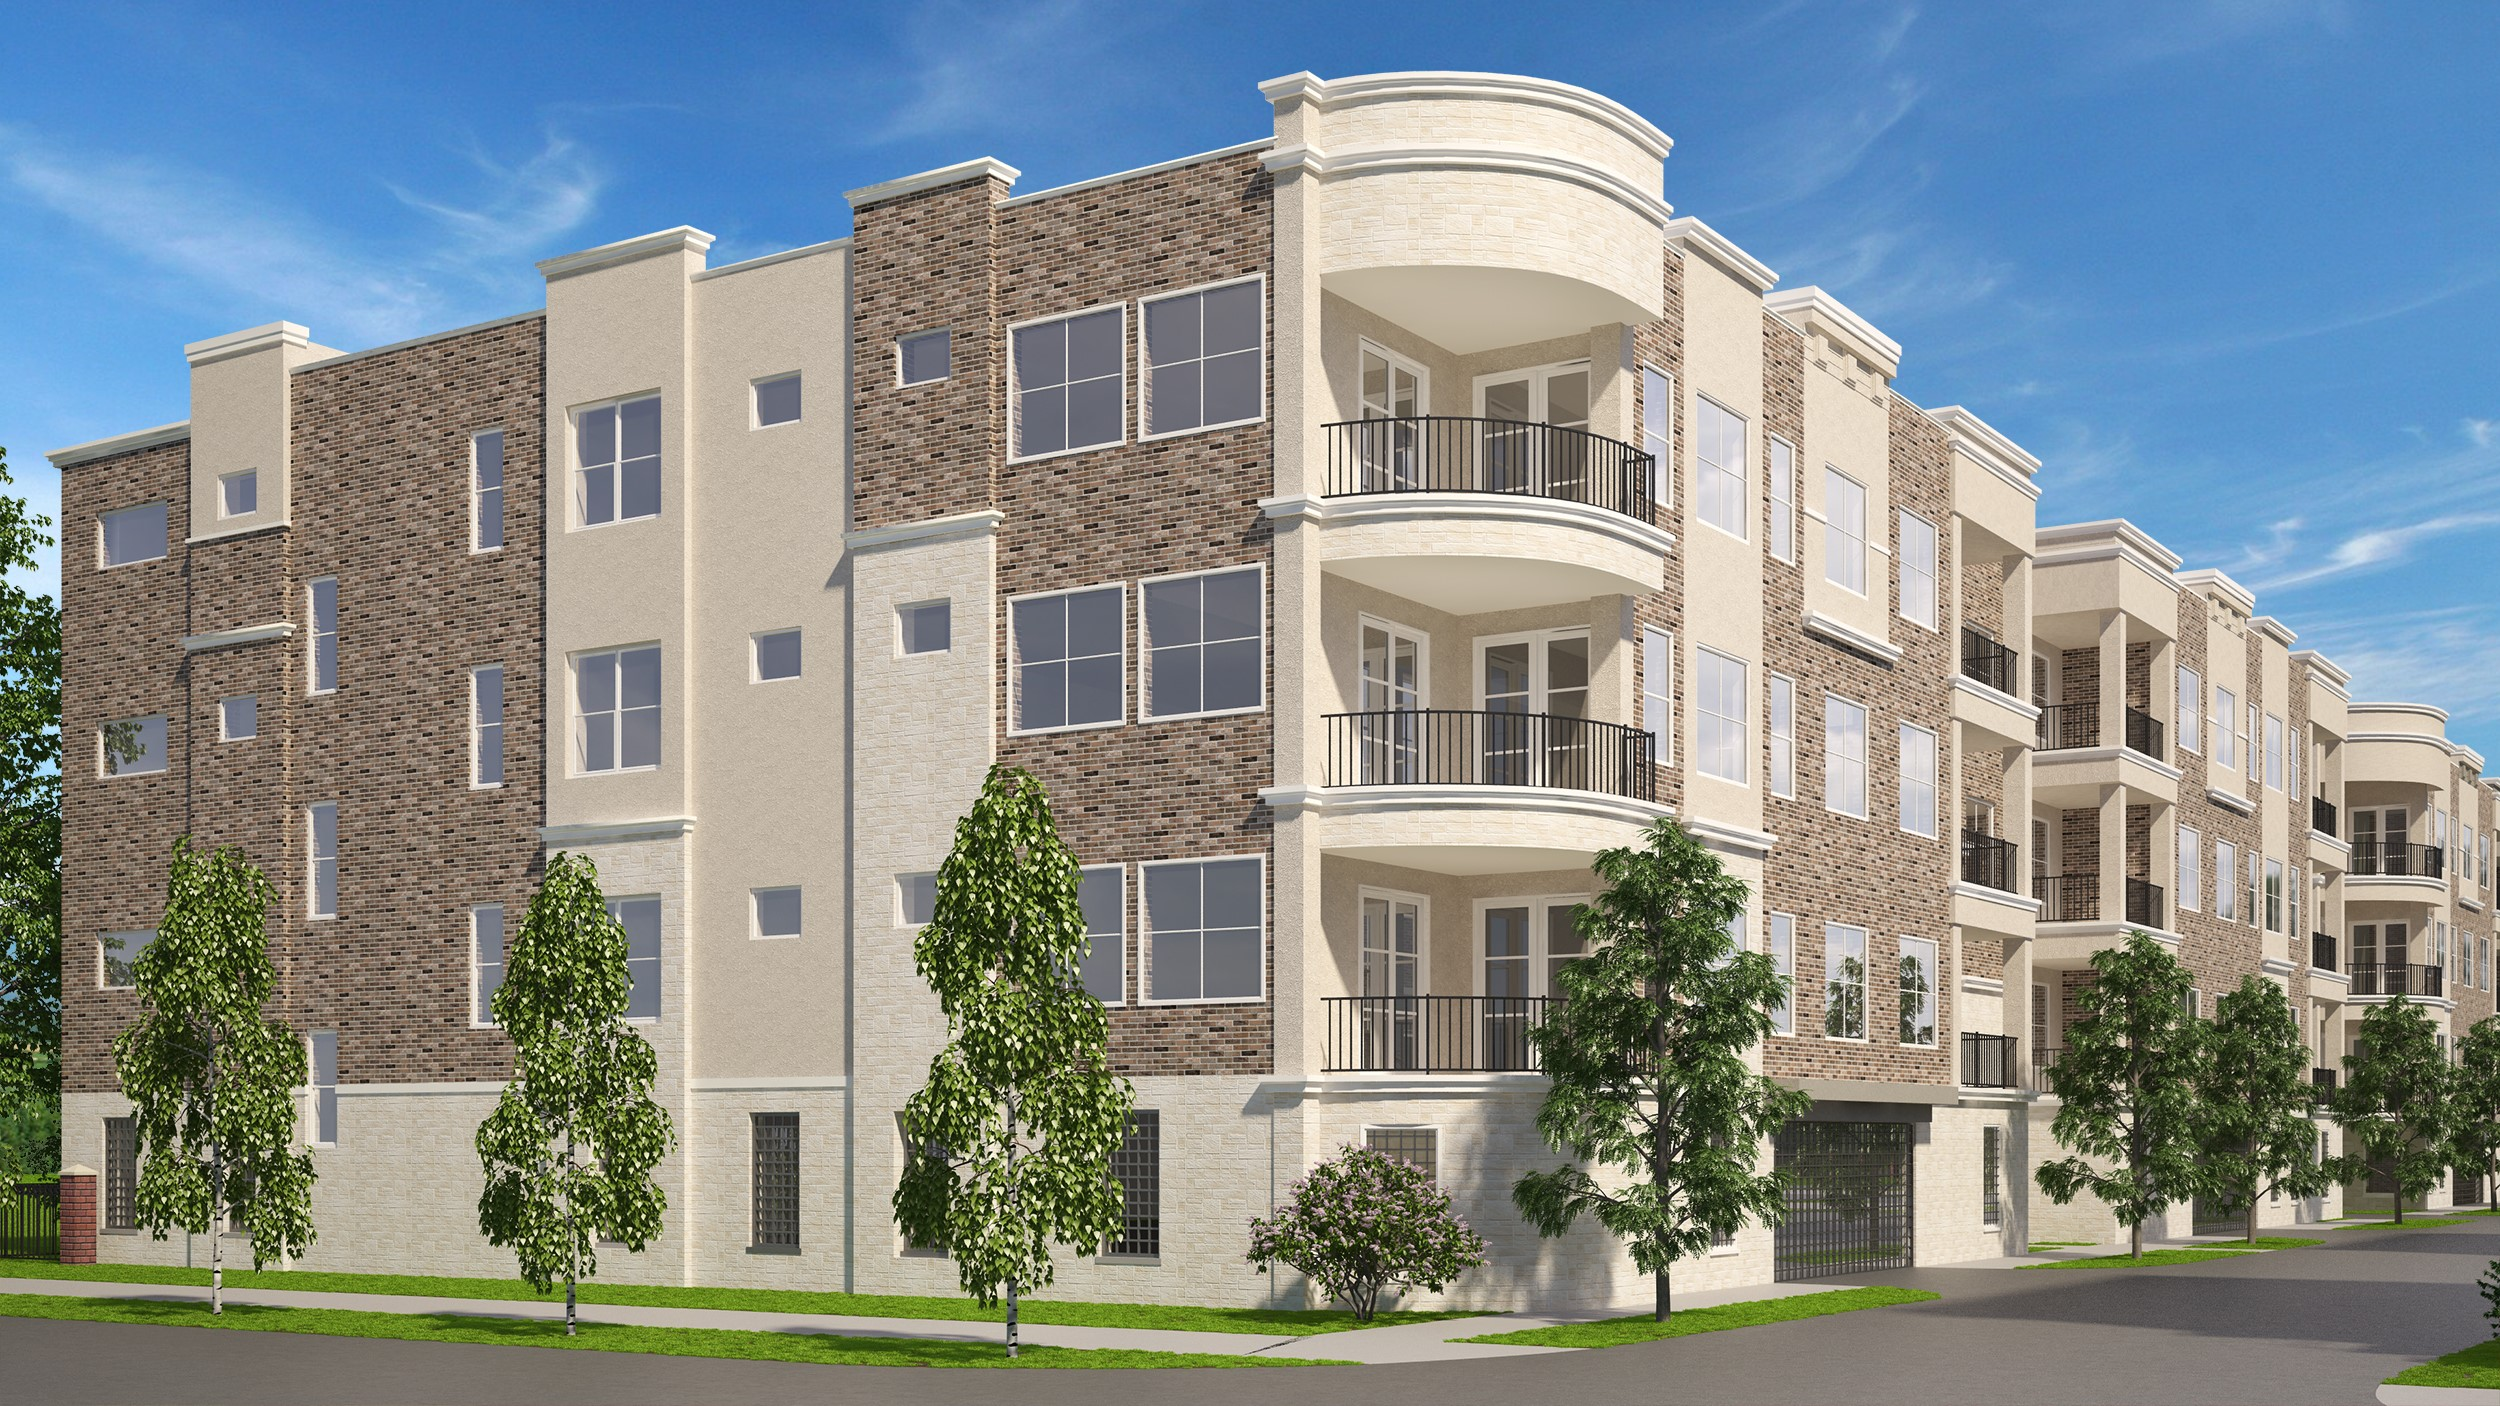 Exterior Rendering of Residences on Duck Creek Trail